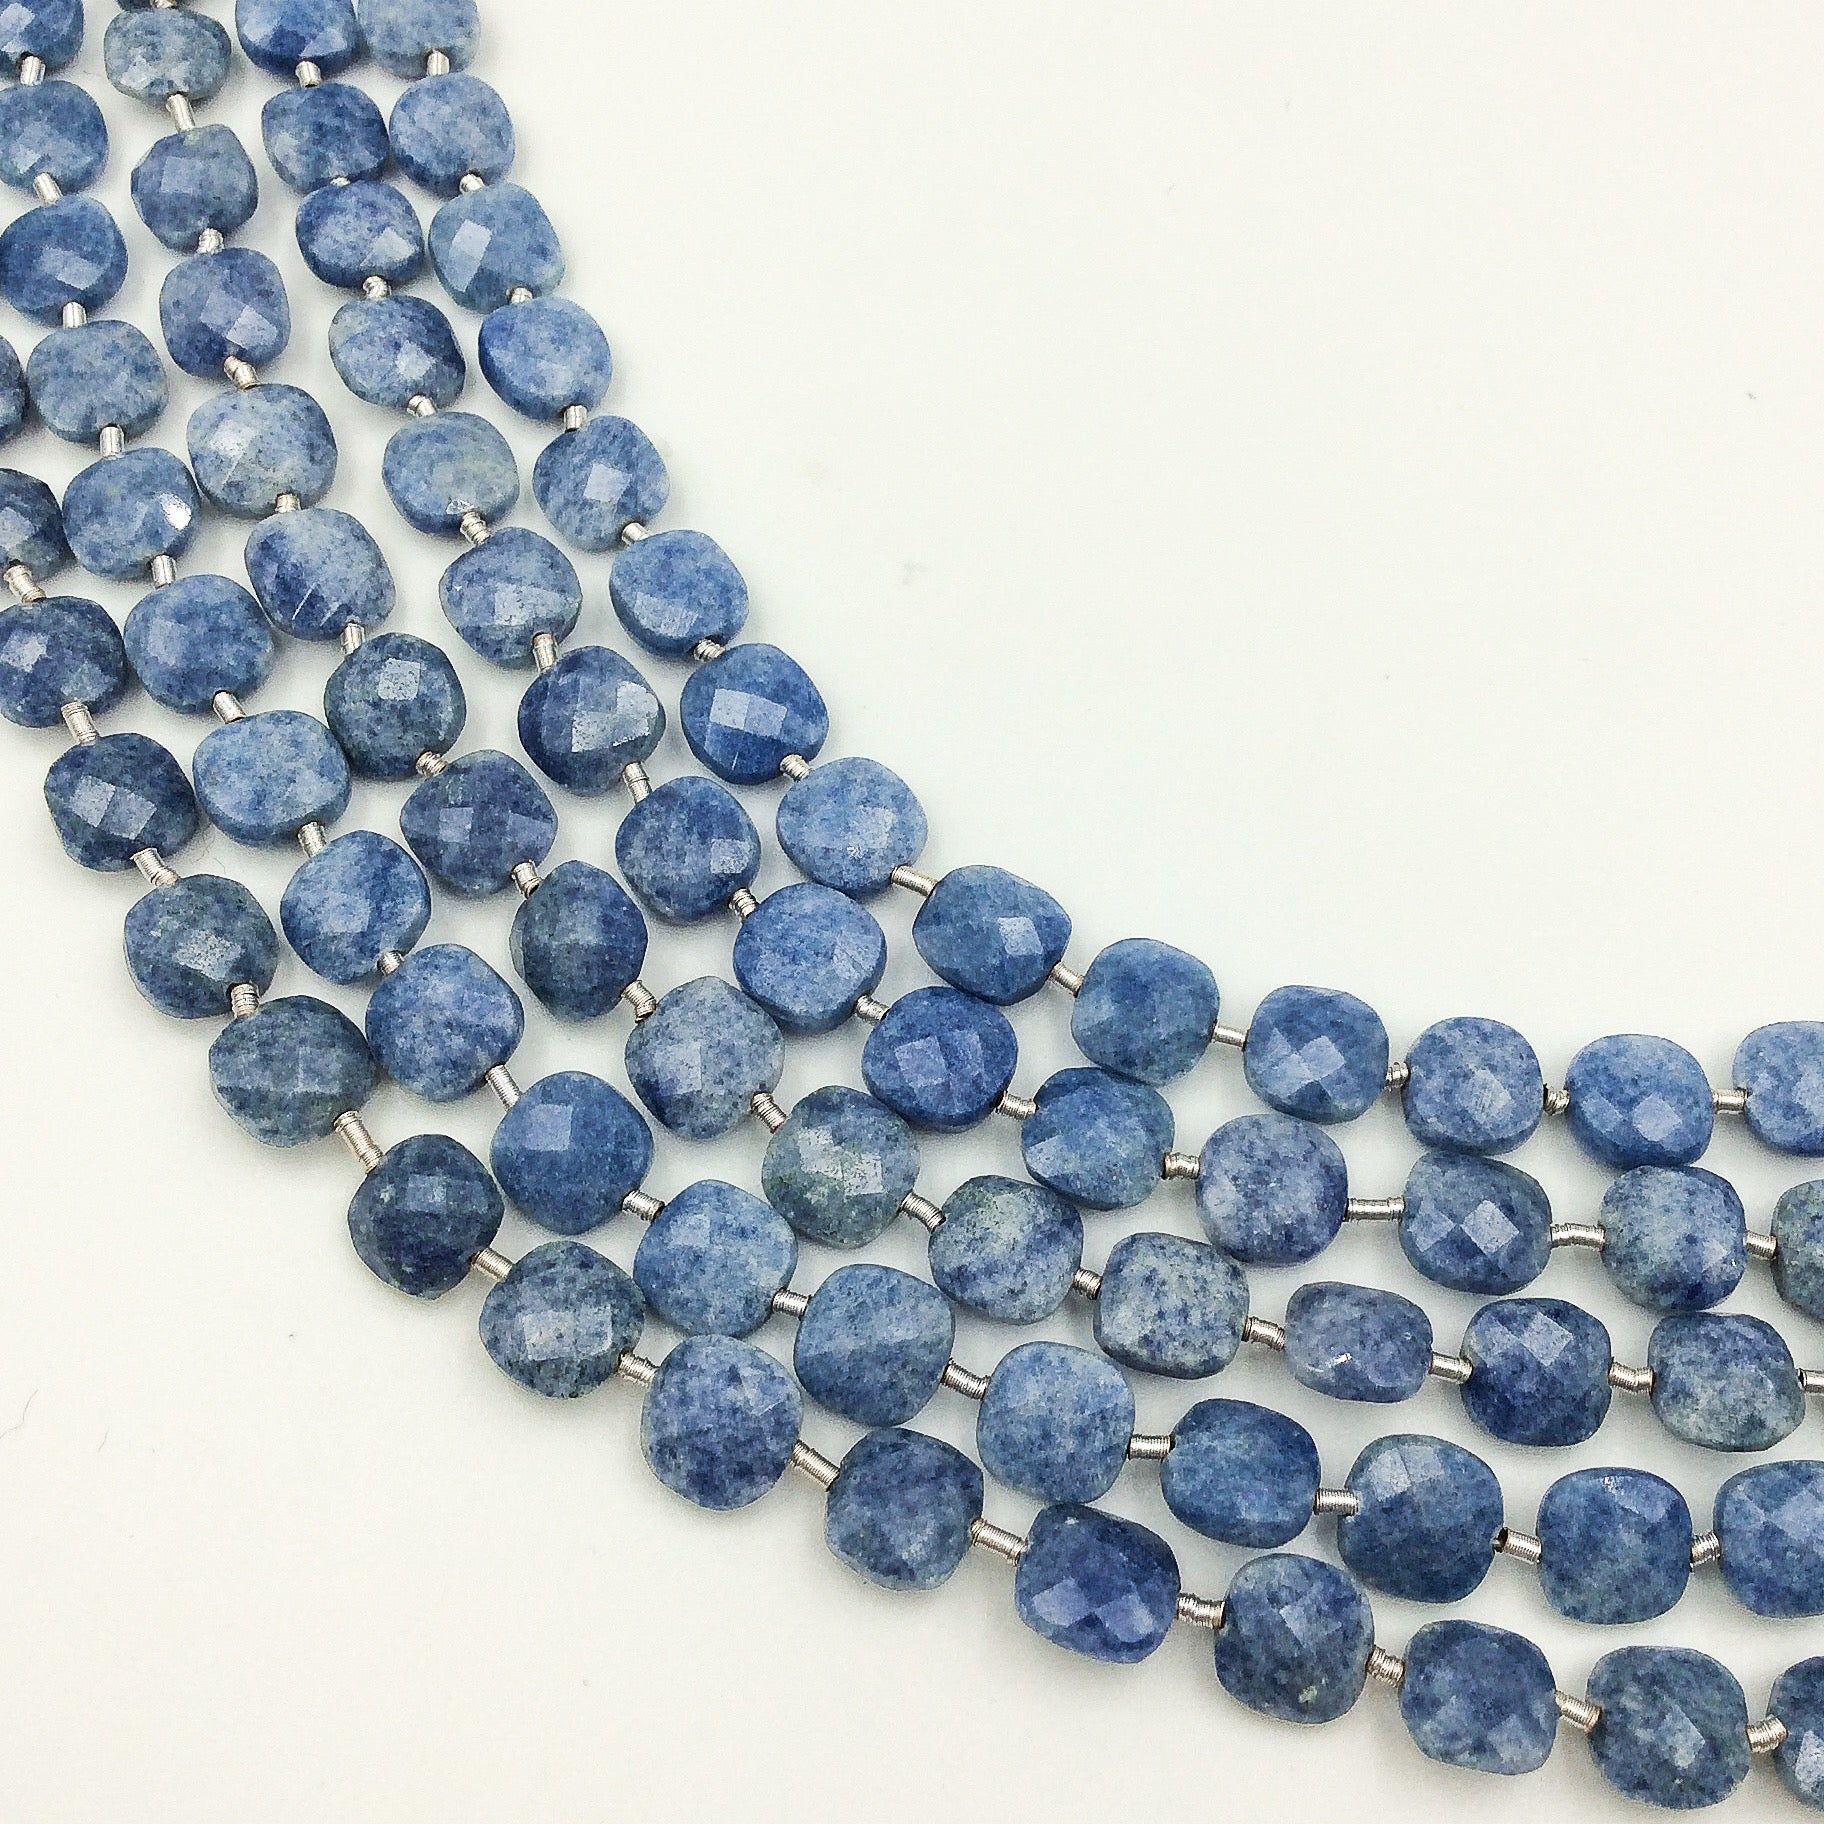 Blue Quartz Faceted Checker Beads (MULTIPLE SIZES)